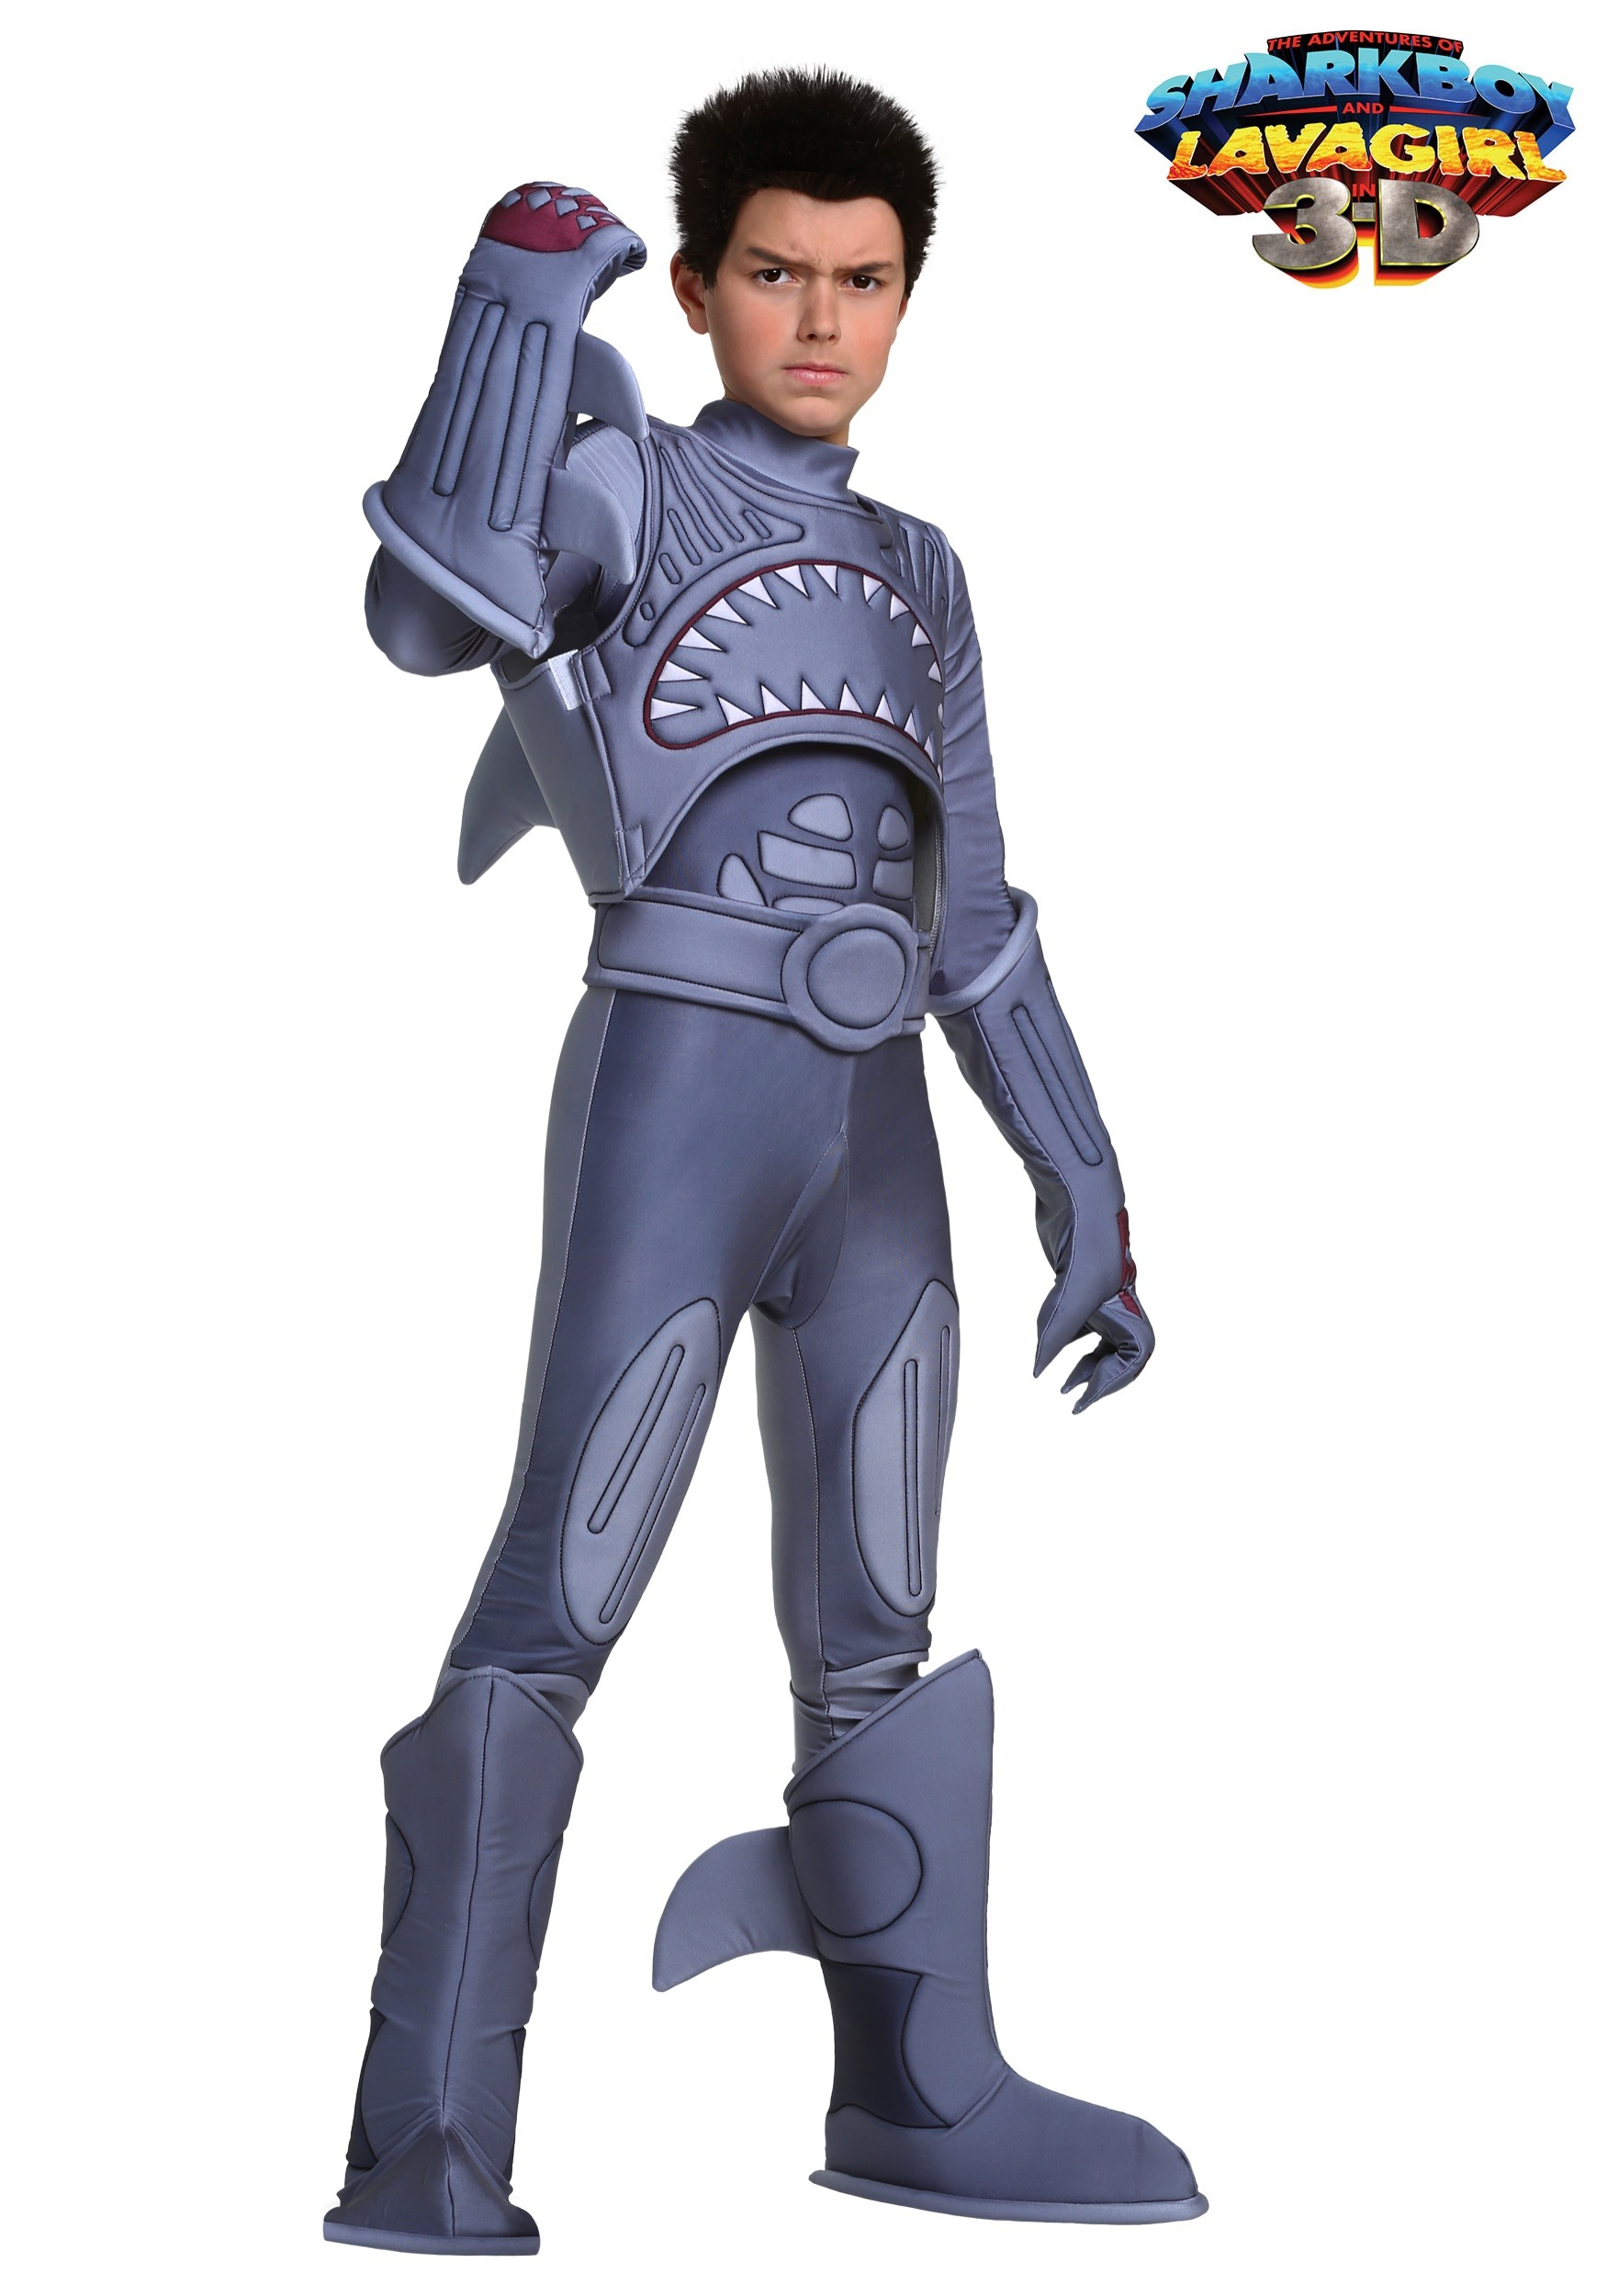 Sharkboy and Lavagirl Costumes